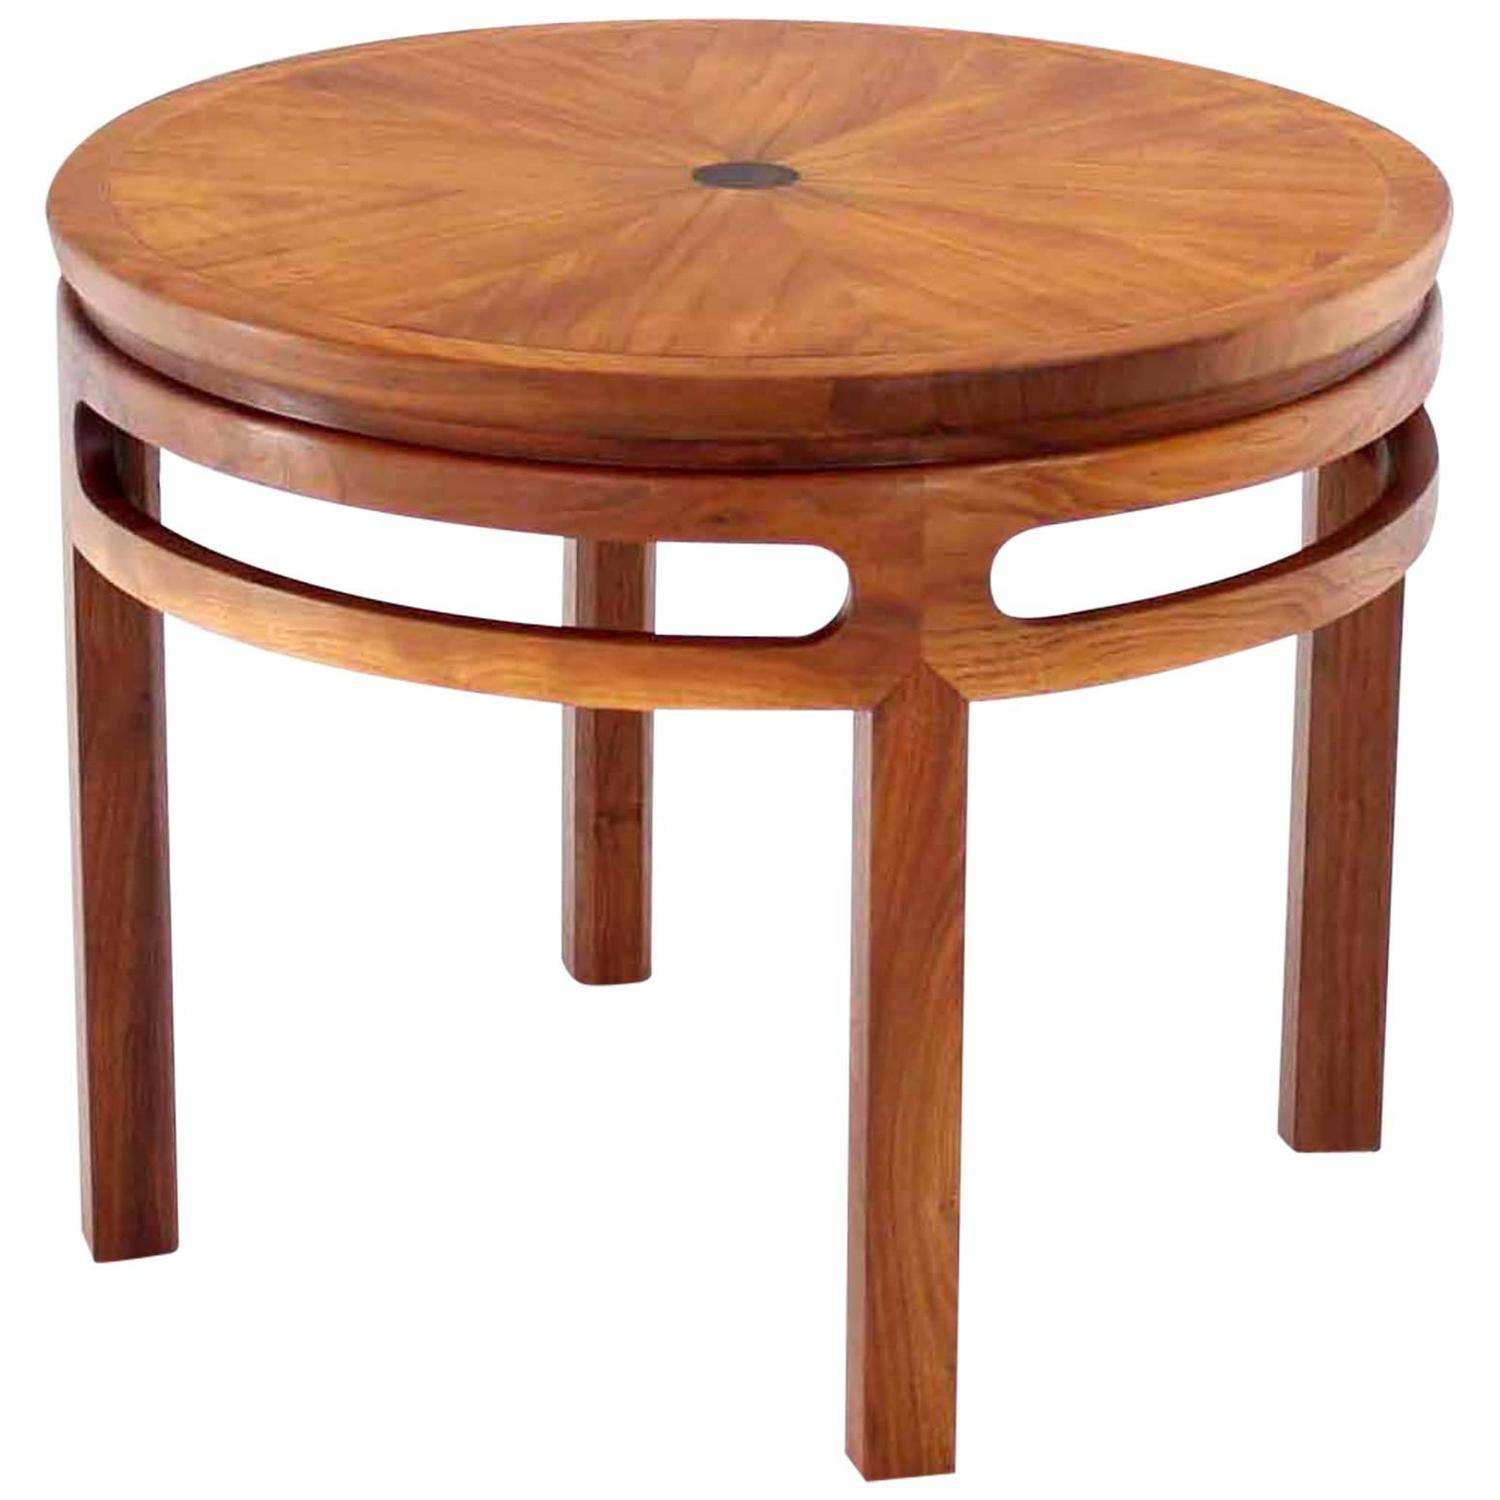 Baker Coffee Table Round: Baker Round Walnut Table At 1stdibs